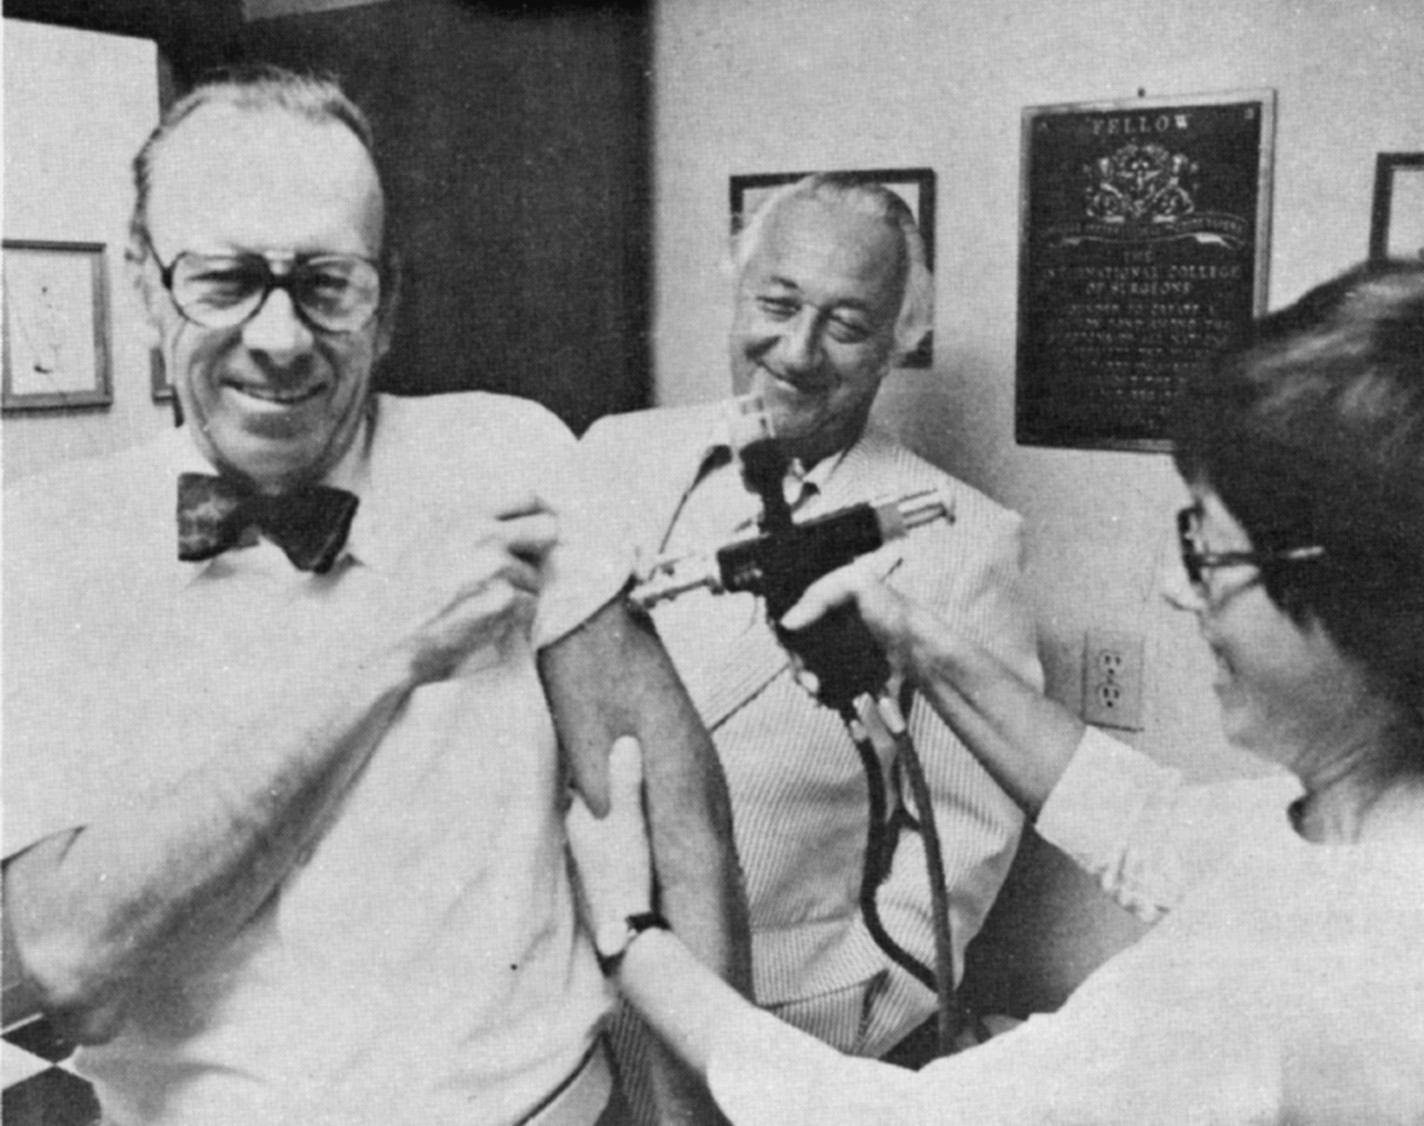 Photo of Jerry Keuper receiving a flu shot with Oswald Holzer.